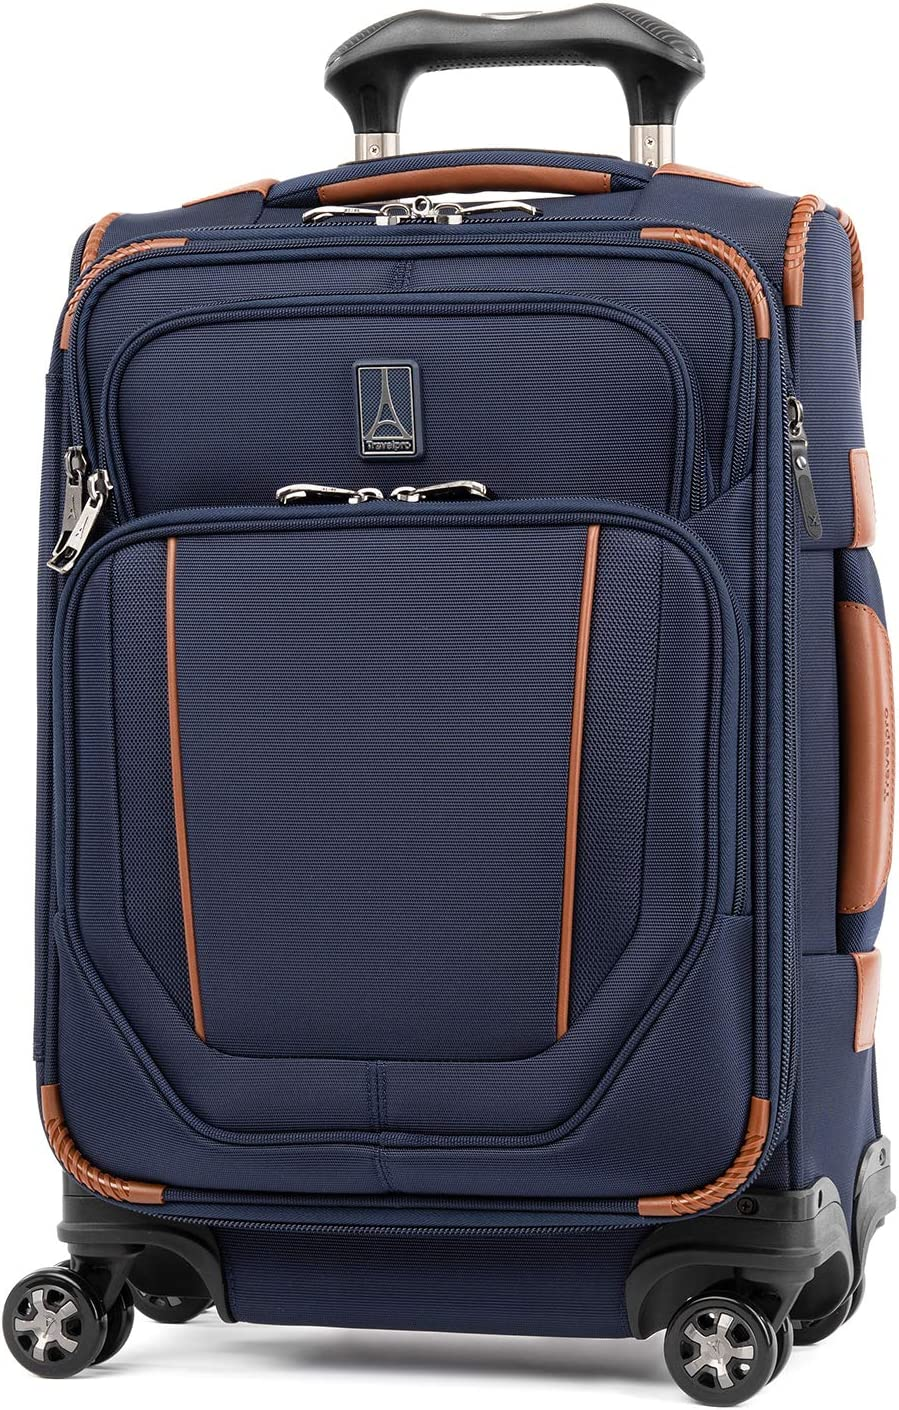 Travelpro Crew Versapack-Softside Expandable Spinner Wheel Luggage, Patriot Blue, Carry-On 20-Inch